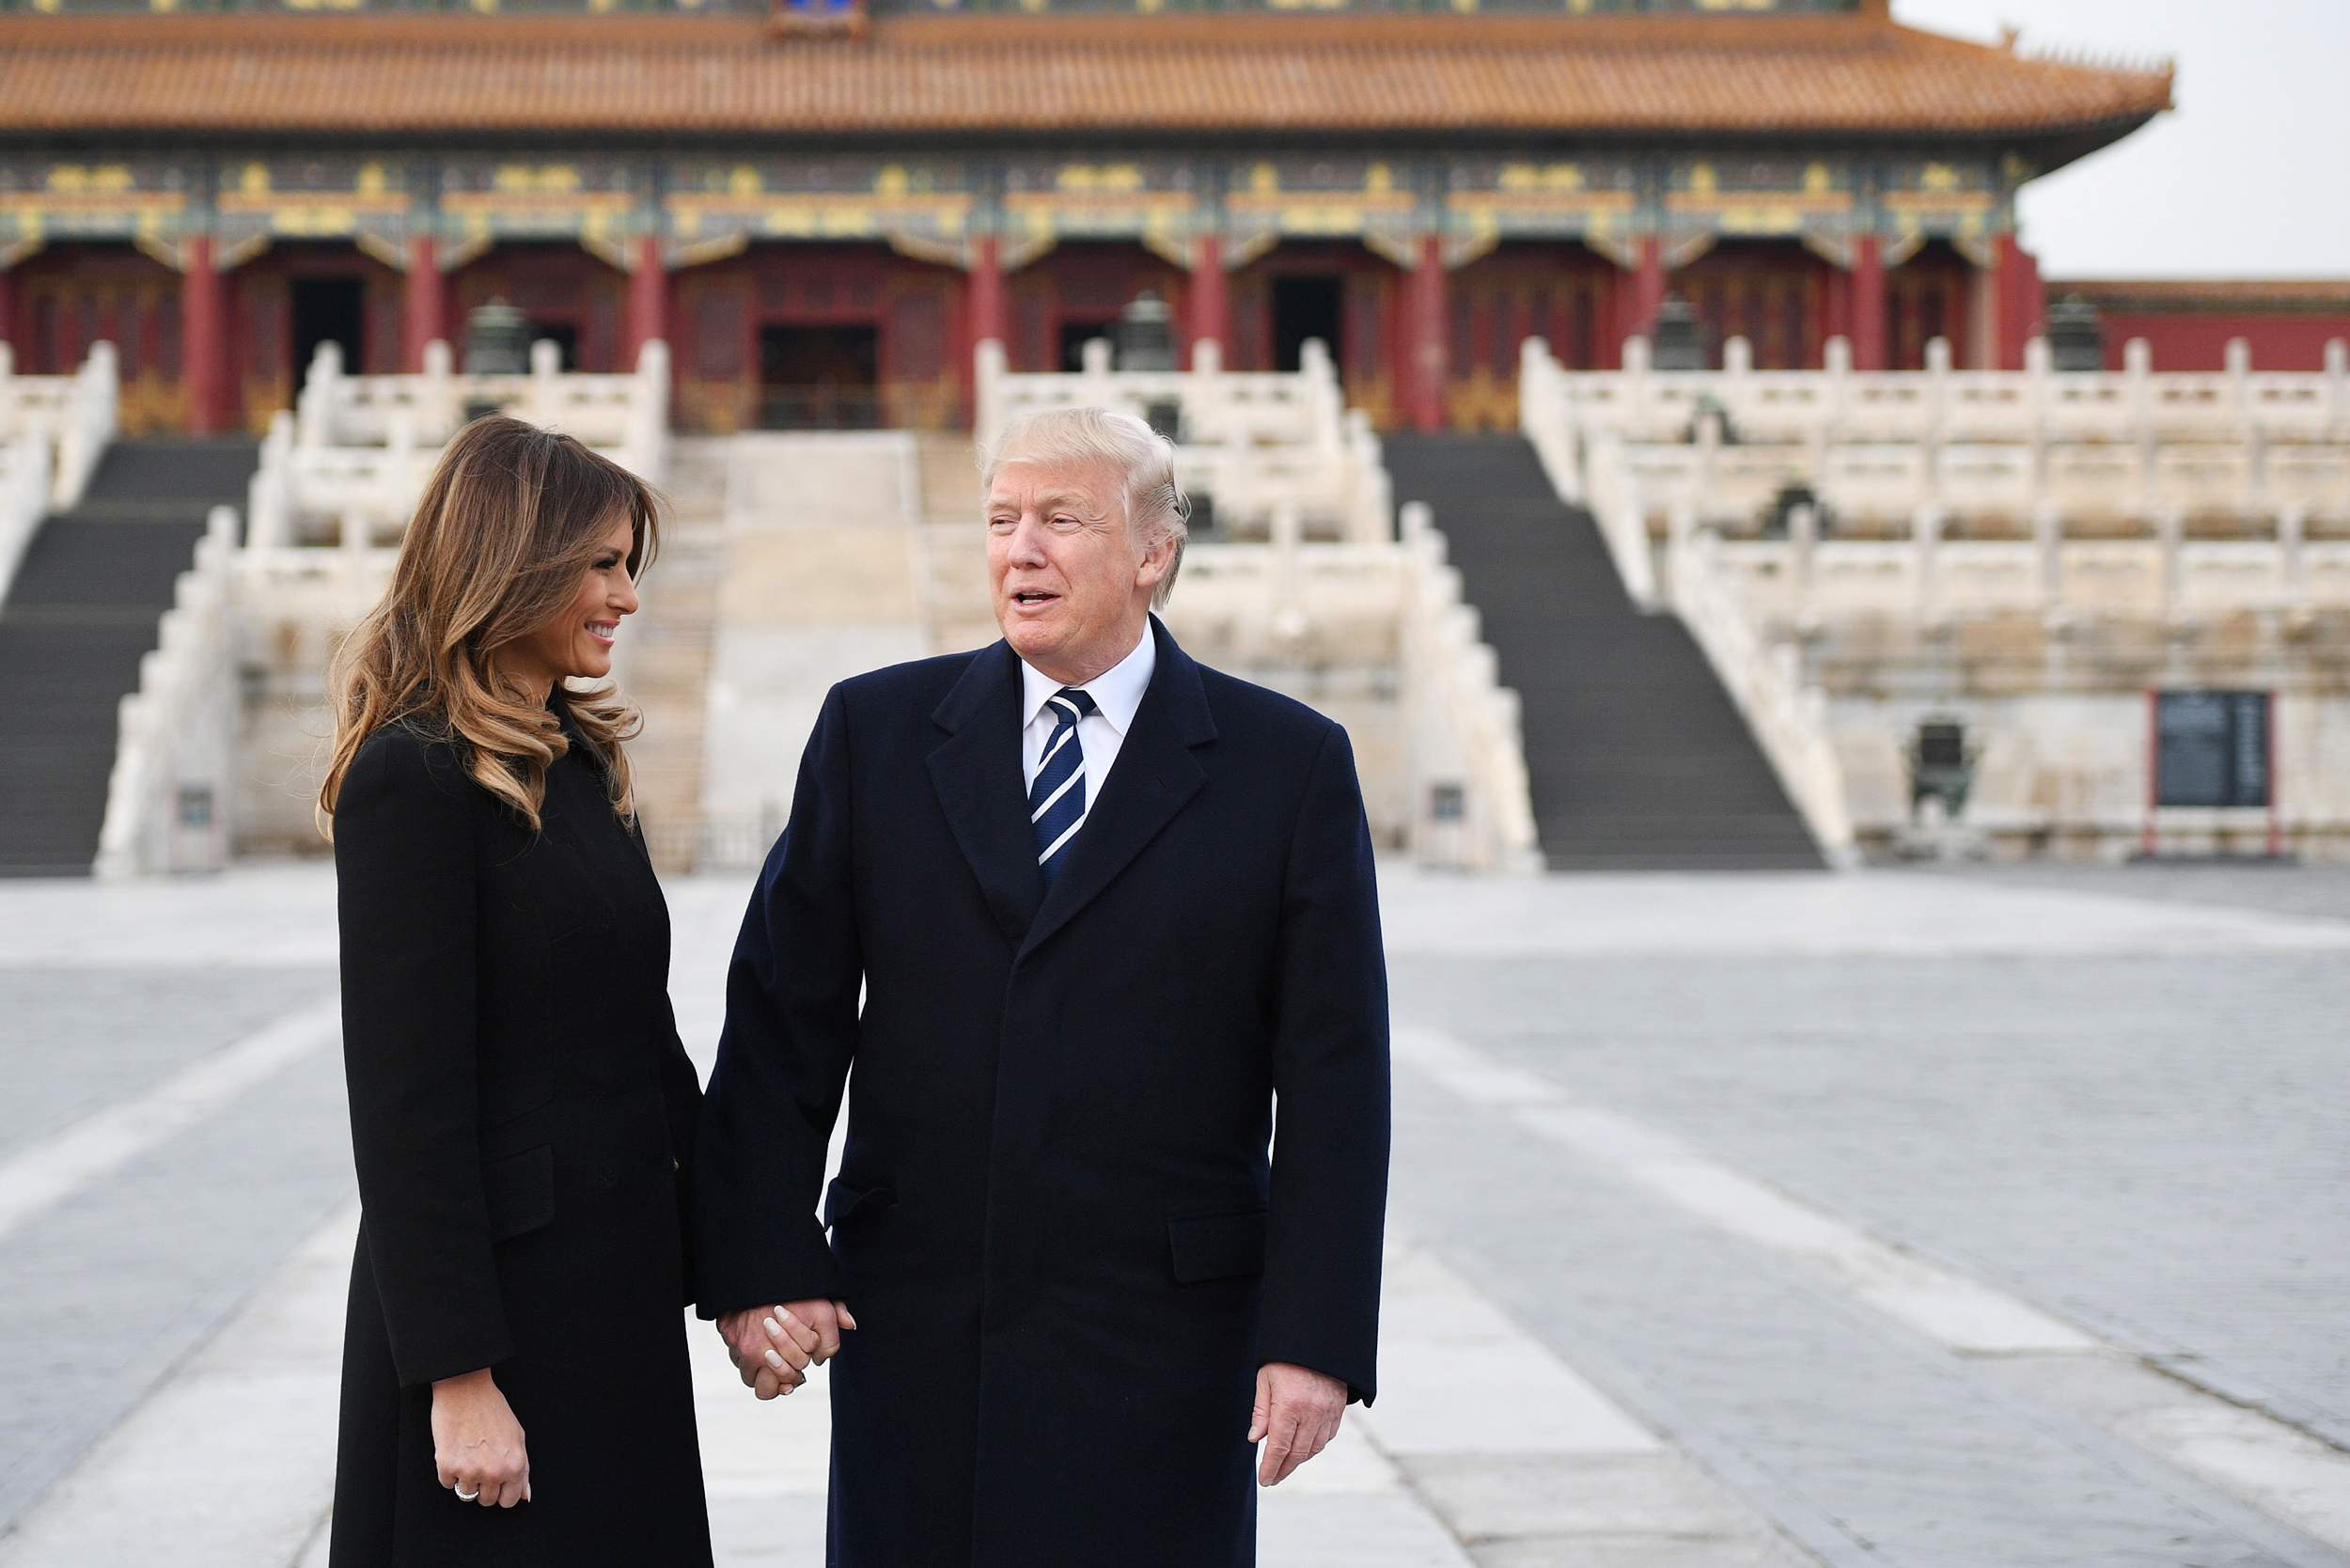 Image: US President Donald Trump holds hands with First Lady Melania Trump in the Forbidden City in Beijing